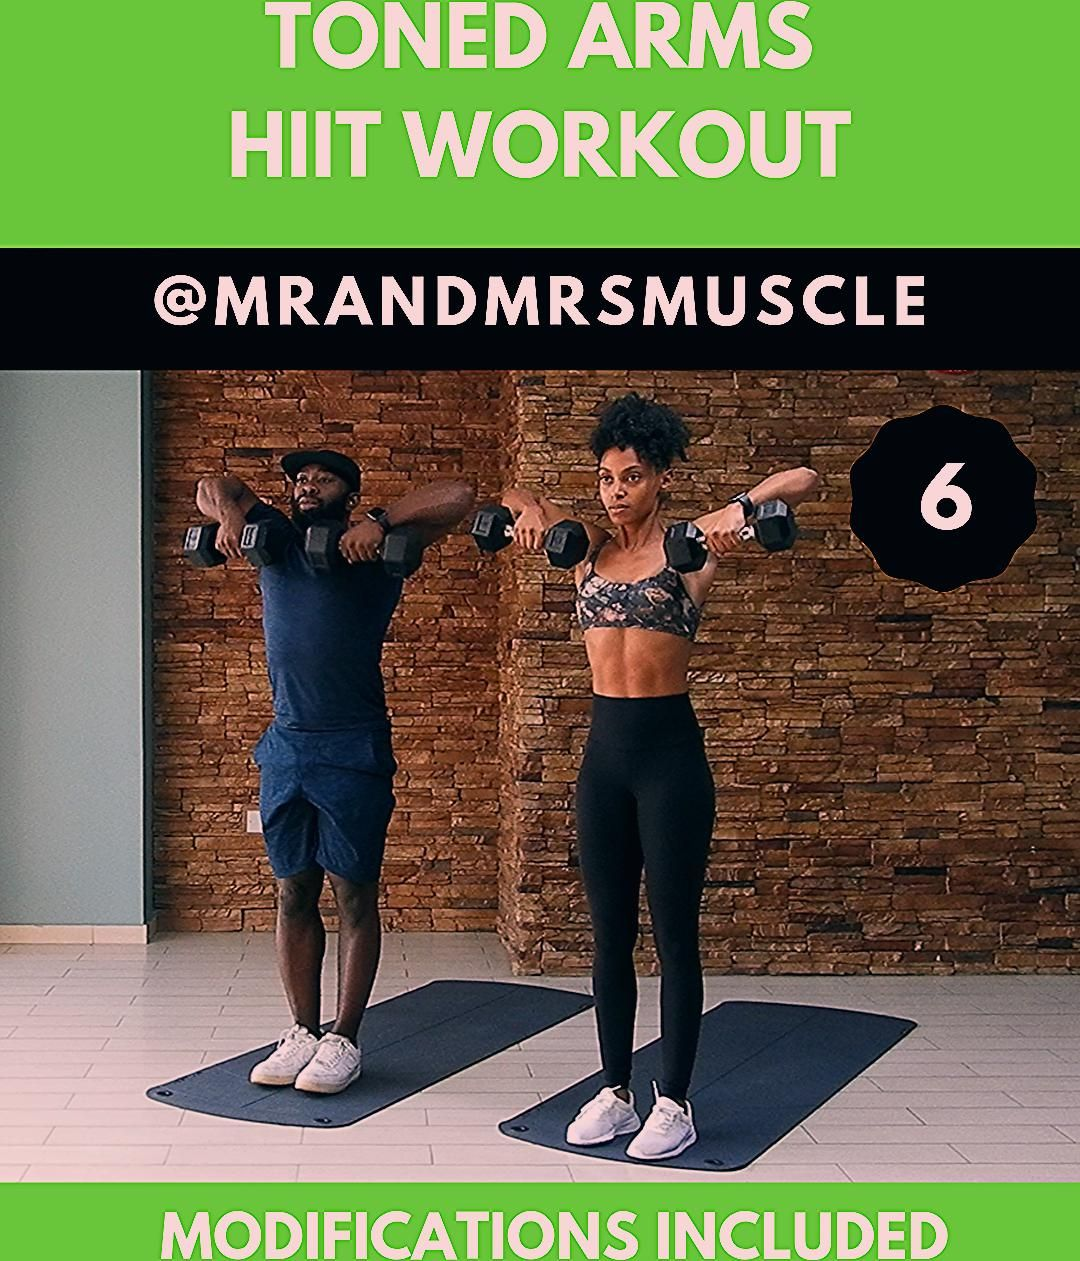 Get TONED ARMS with our Full Upper Body HIIT Workout live on our YouTube Channel with low impact mod...